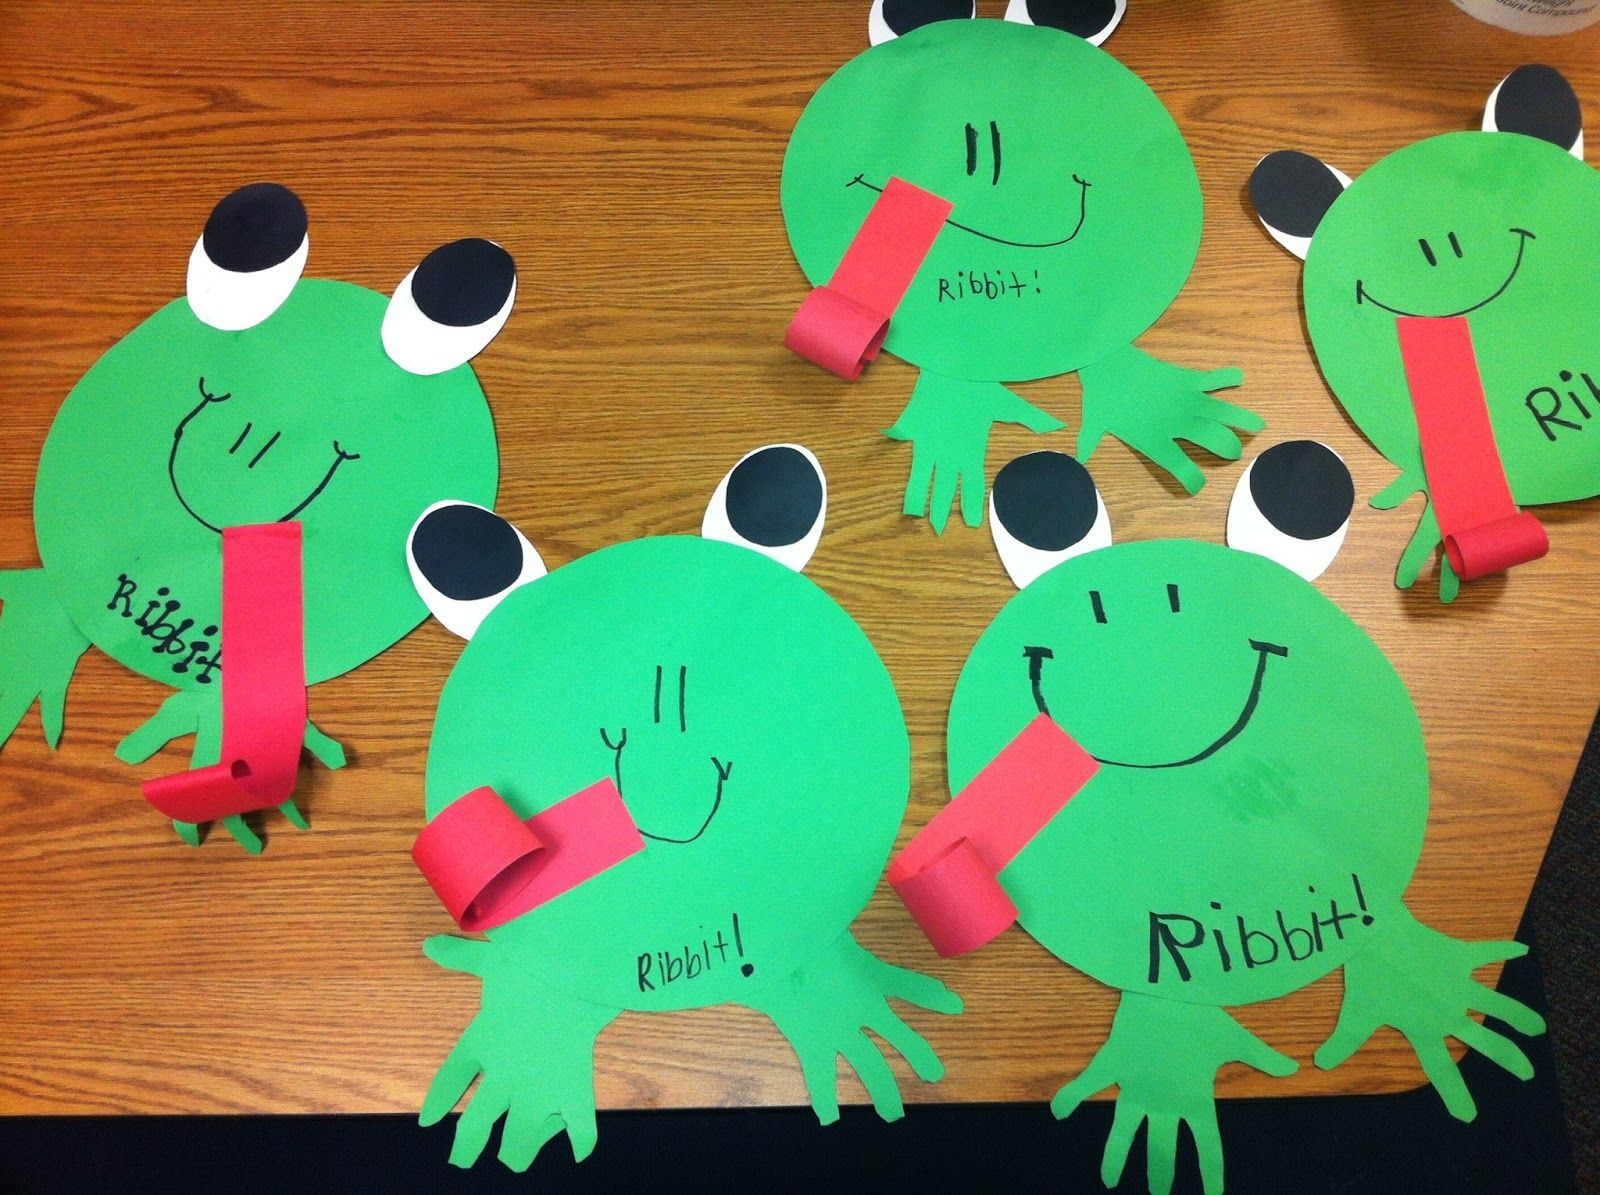 Ribbit Check Out Our Cute Little Froggies That Use The